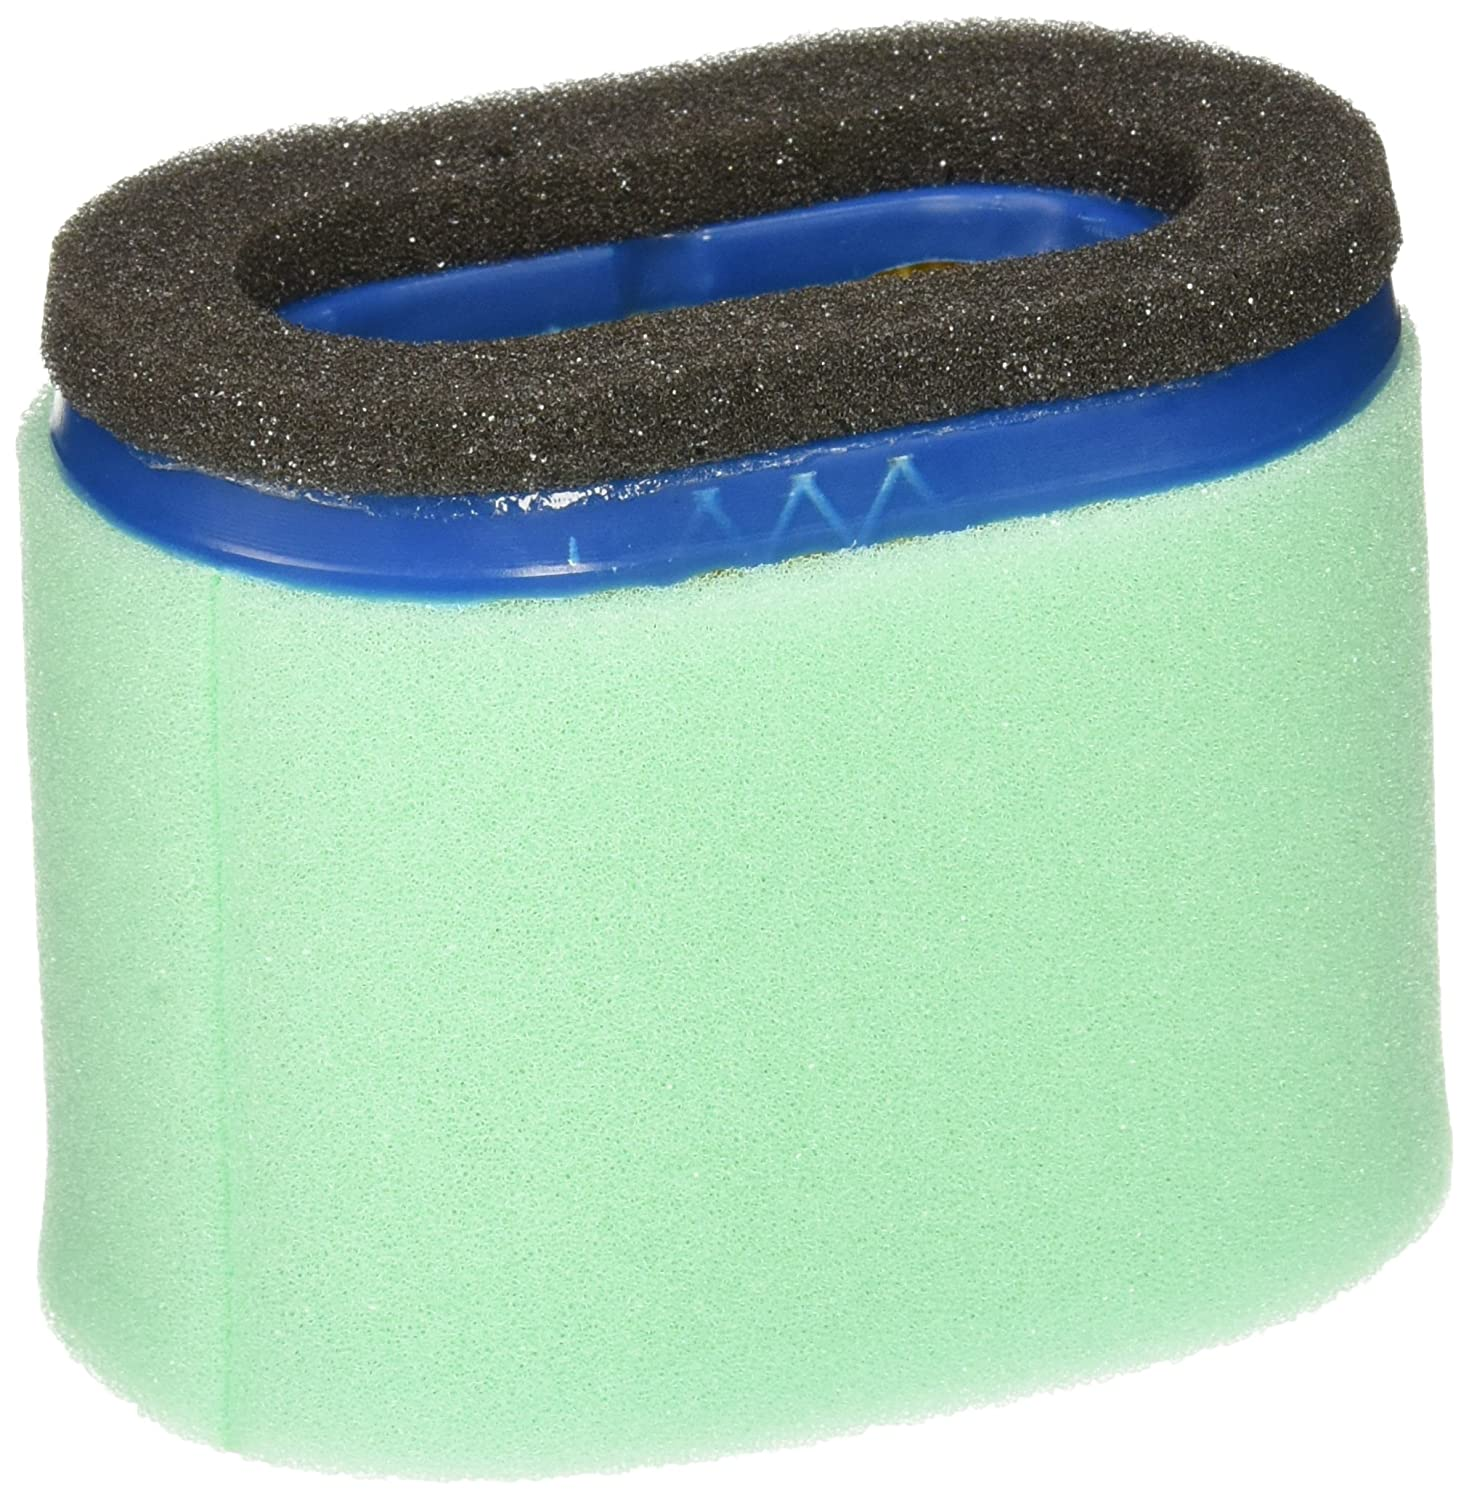 Stens 100-871 Air Filter Replaces Briggs & Stratton 692446 4224